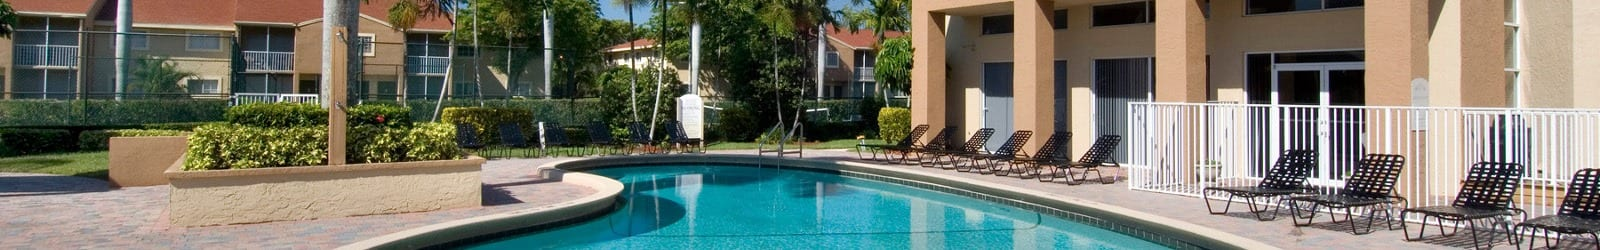 Contact Azalea Village Apartments for information about our apartments in West Palm Beach